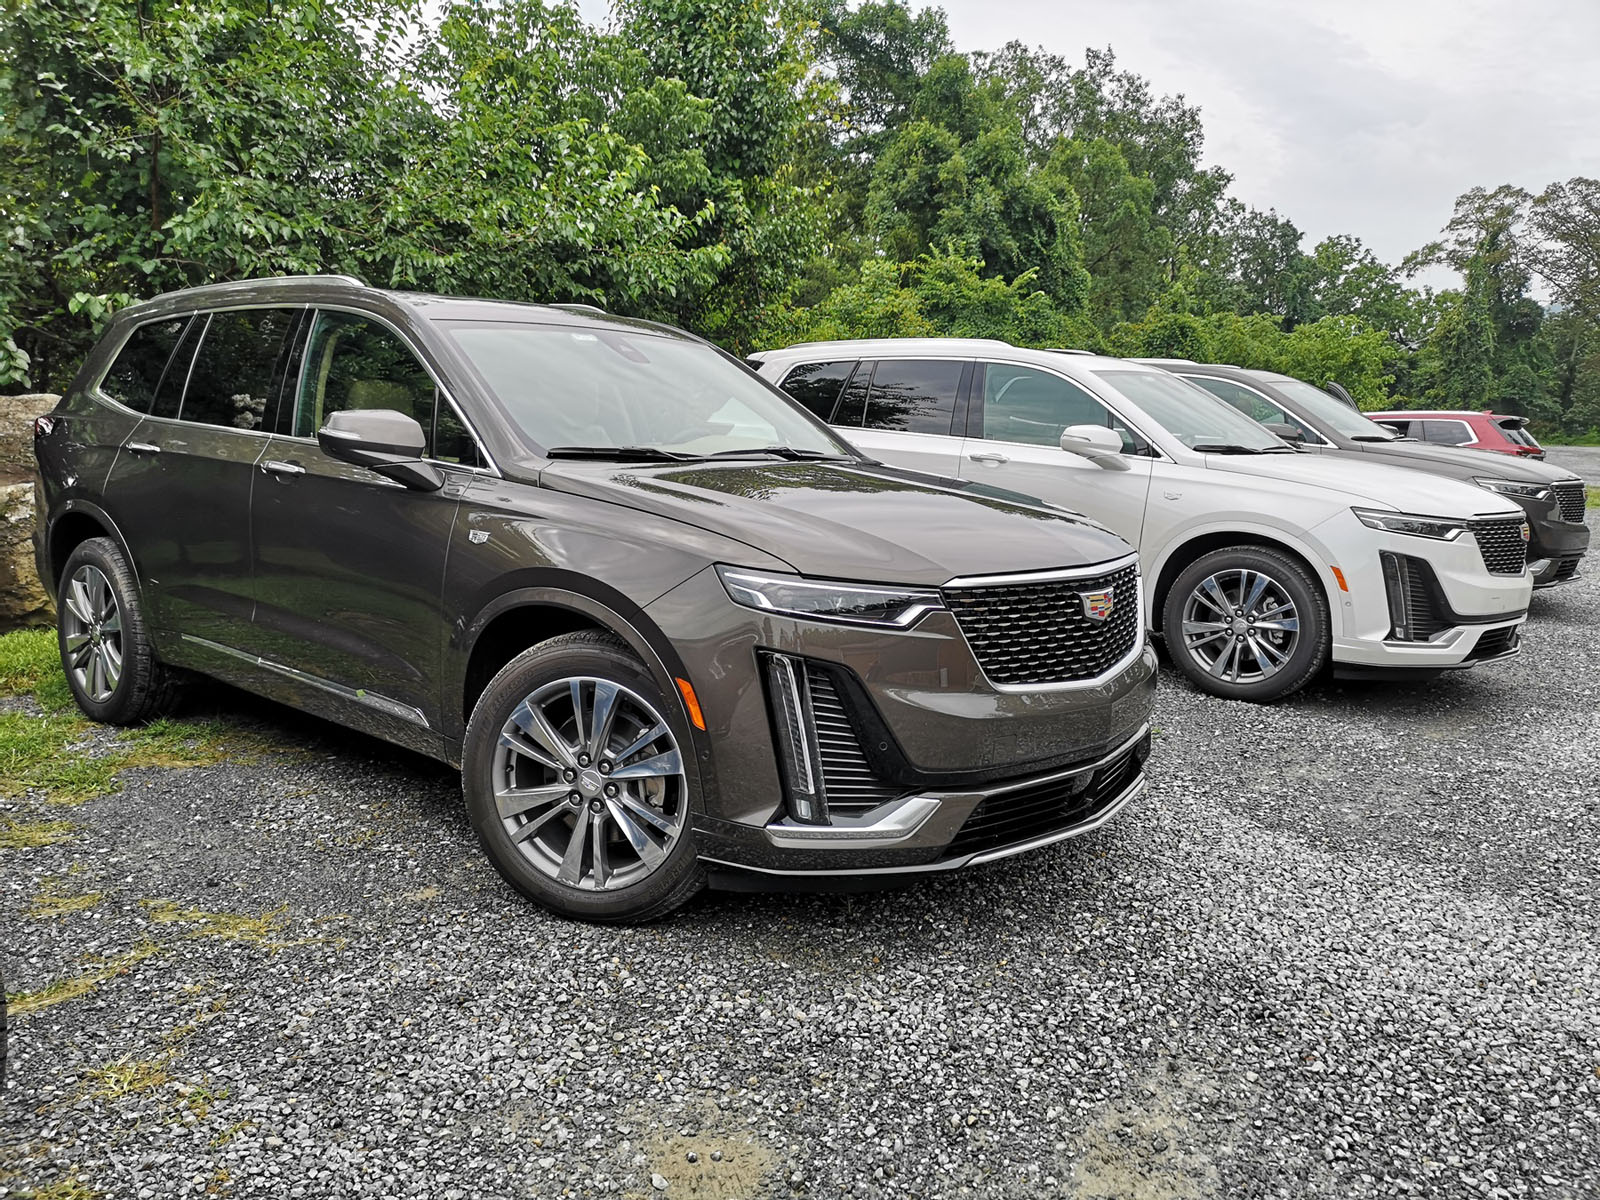 2020 Cadillac Xt6 First Drive Review Space And Tech In An